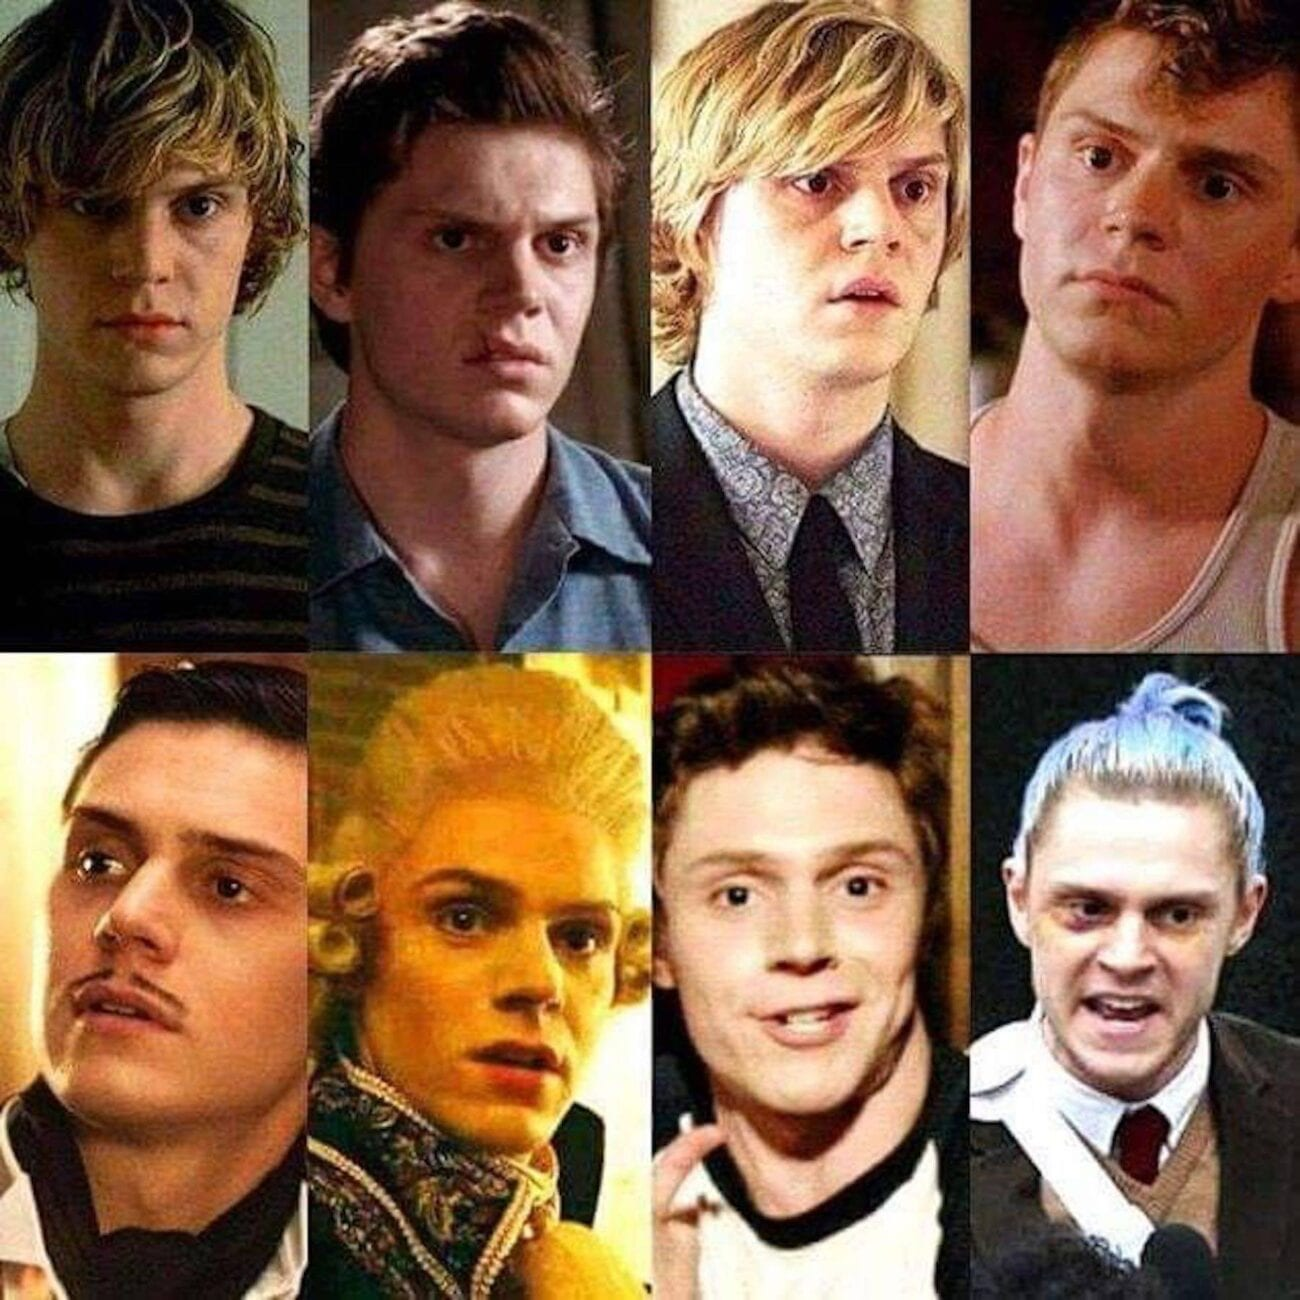 Evan Peters remains a standout star on 'American Horror Story'. Take a journey down memory lane by going through his best performances on 'AHS'.